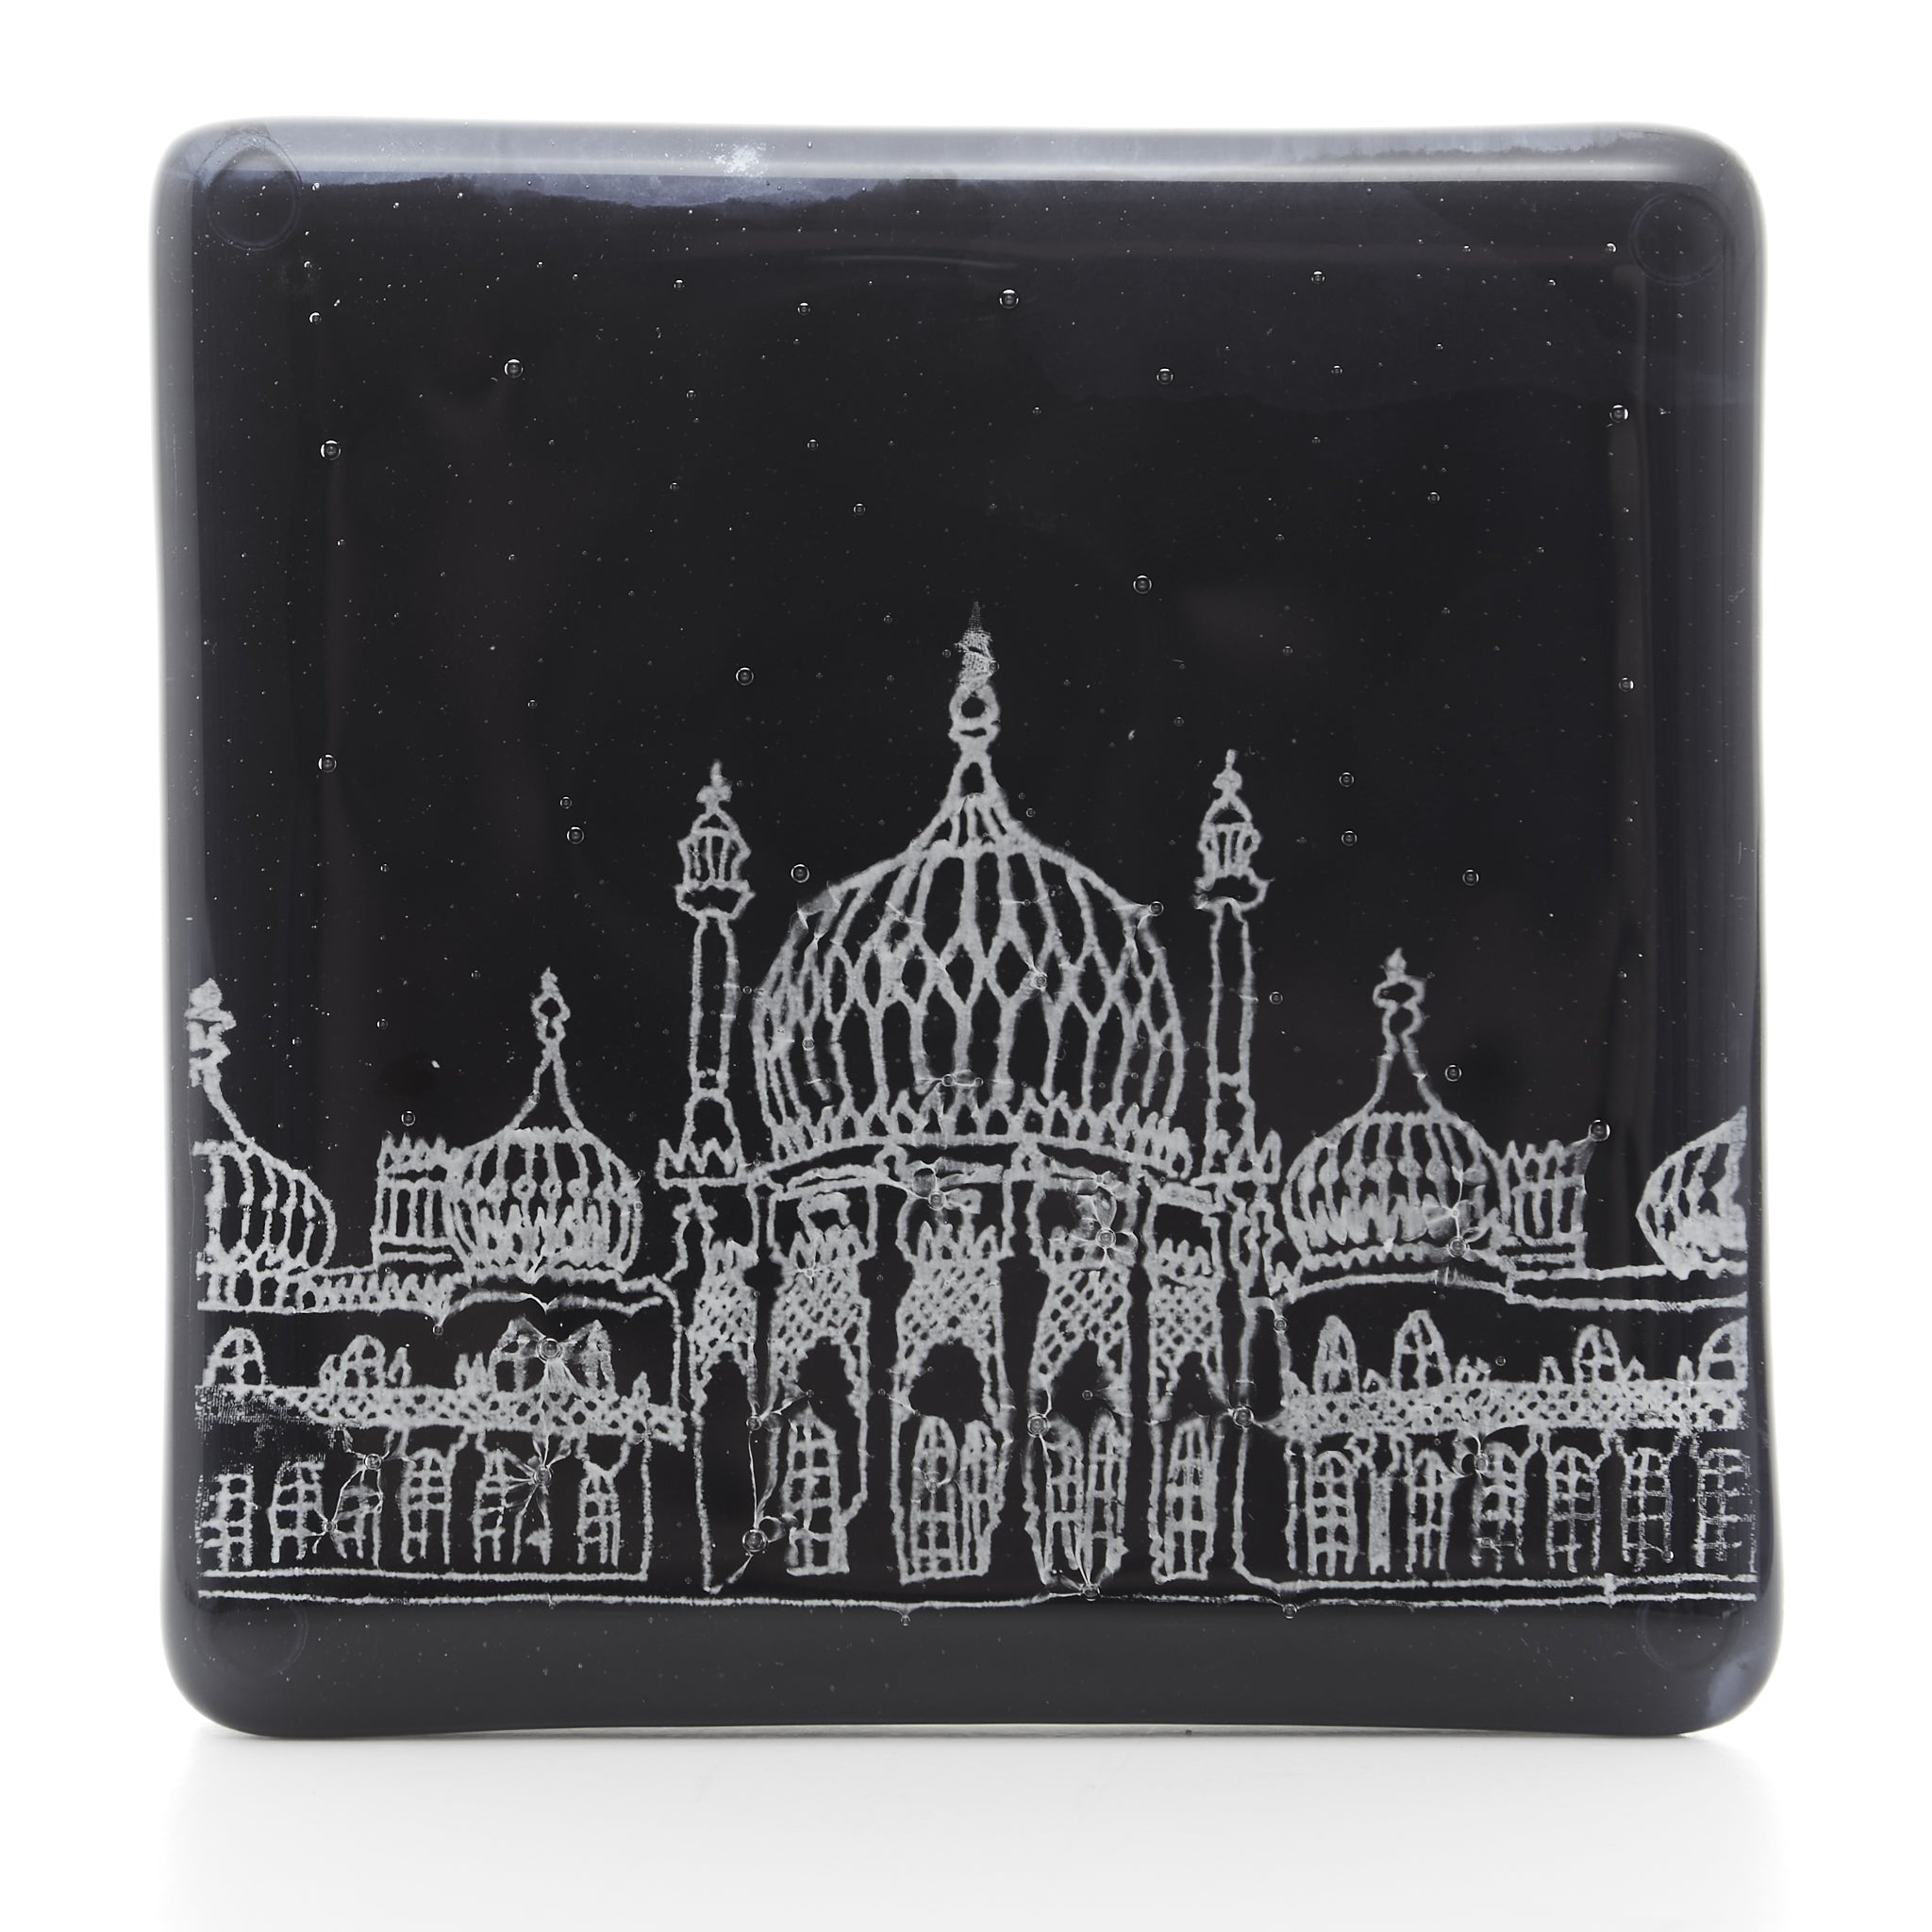 Royal Pavilion Glass Coaster in white